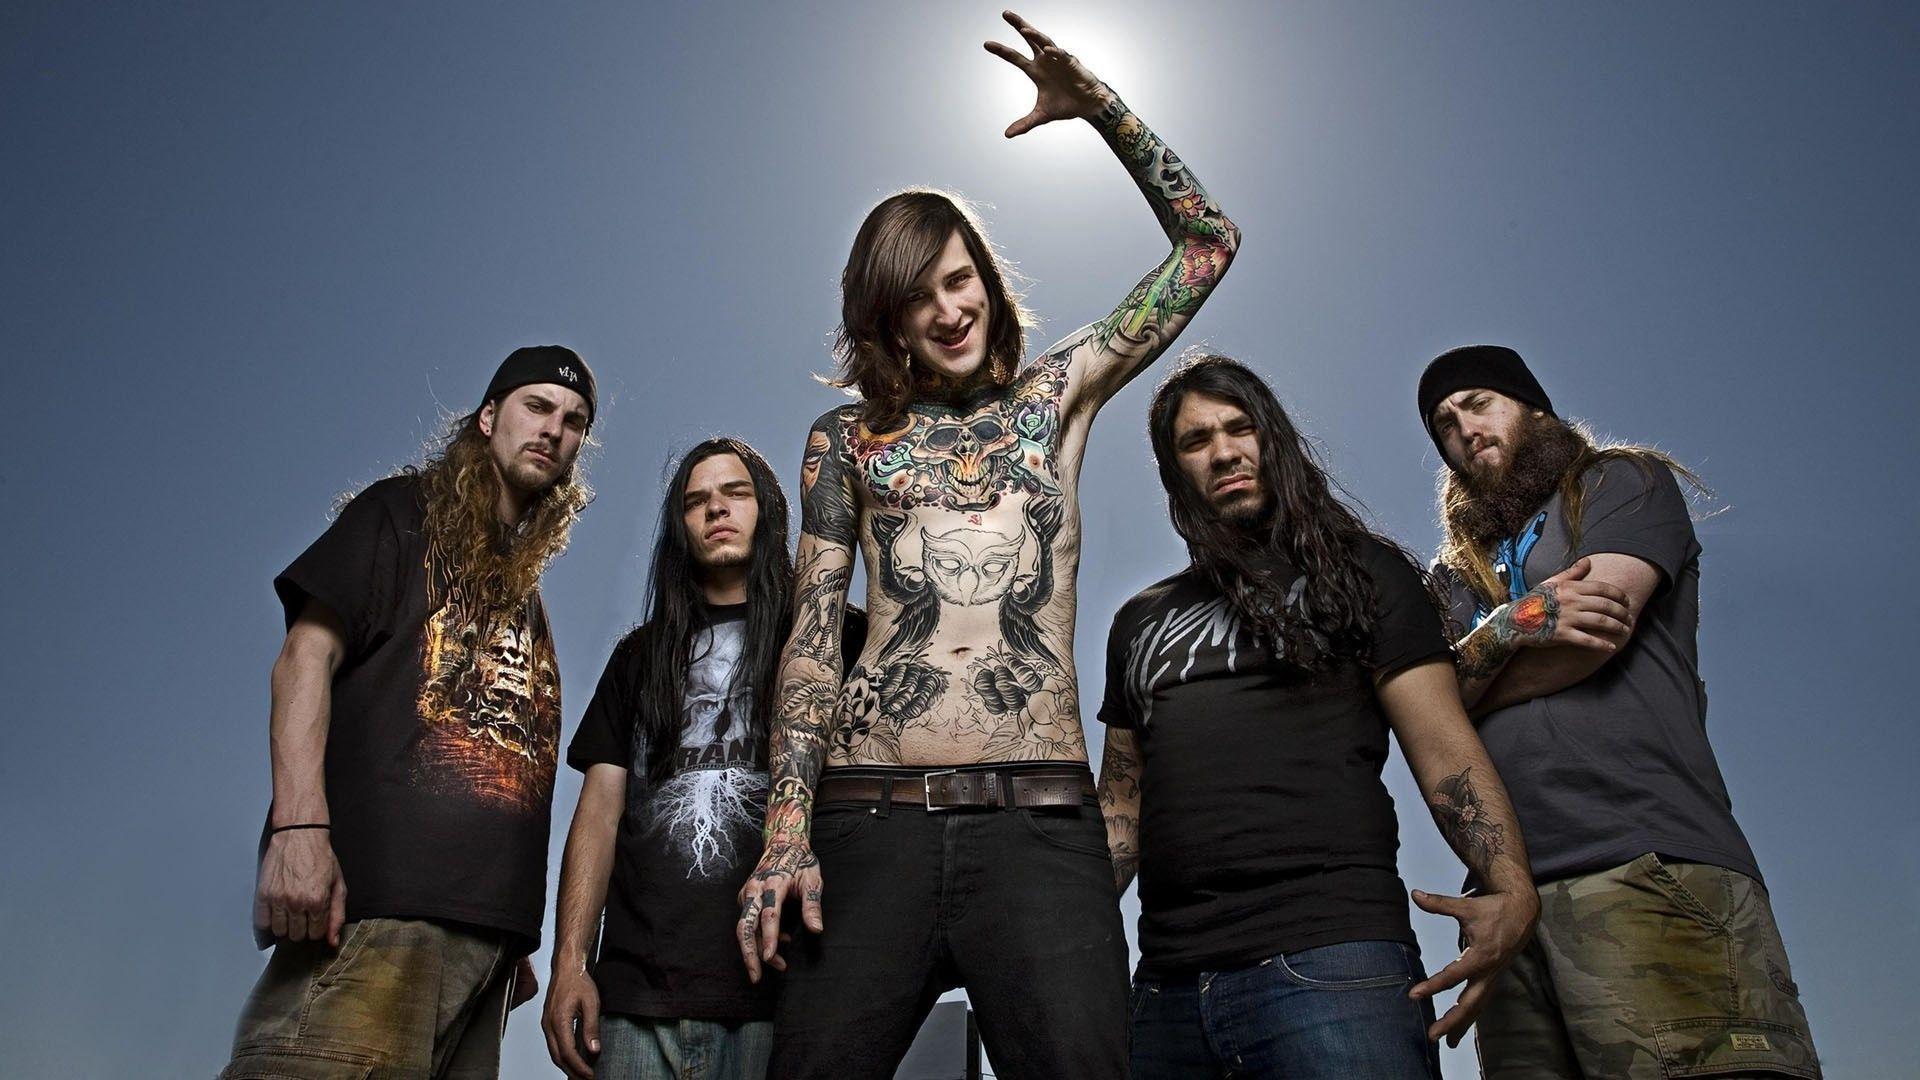 Suicide Silence Computer Wallpapers, Desktop Backgrounds 1920x1080